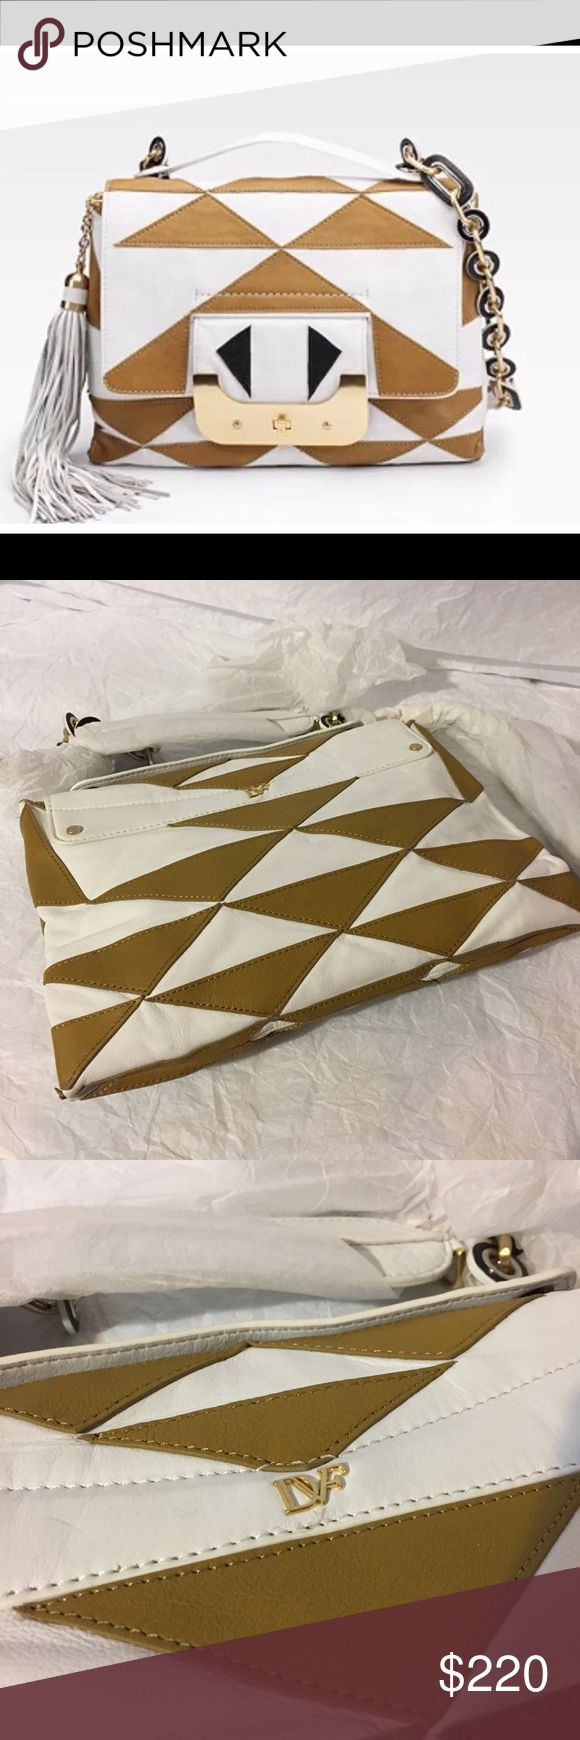 DIANE VON FURSTENBERG WHITE/CAMEL SHOULDER BAG NWT DIANE VON FURSTENBERG WHITE/CAMEL LEATHER SHOULDER BAG Diane Von Furstenberg Bags Shoulder Bags